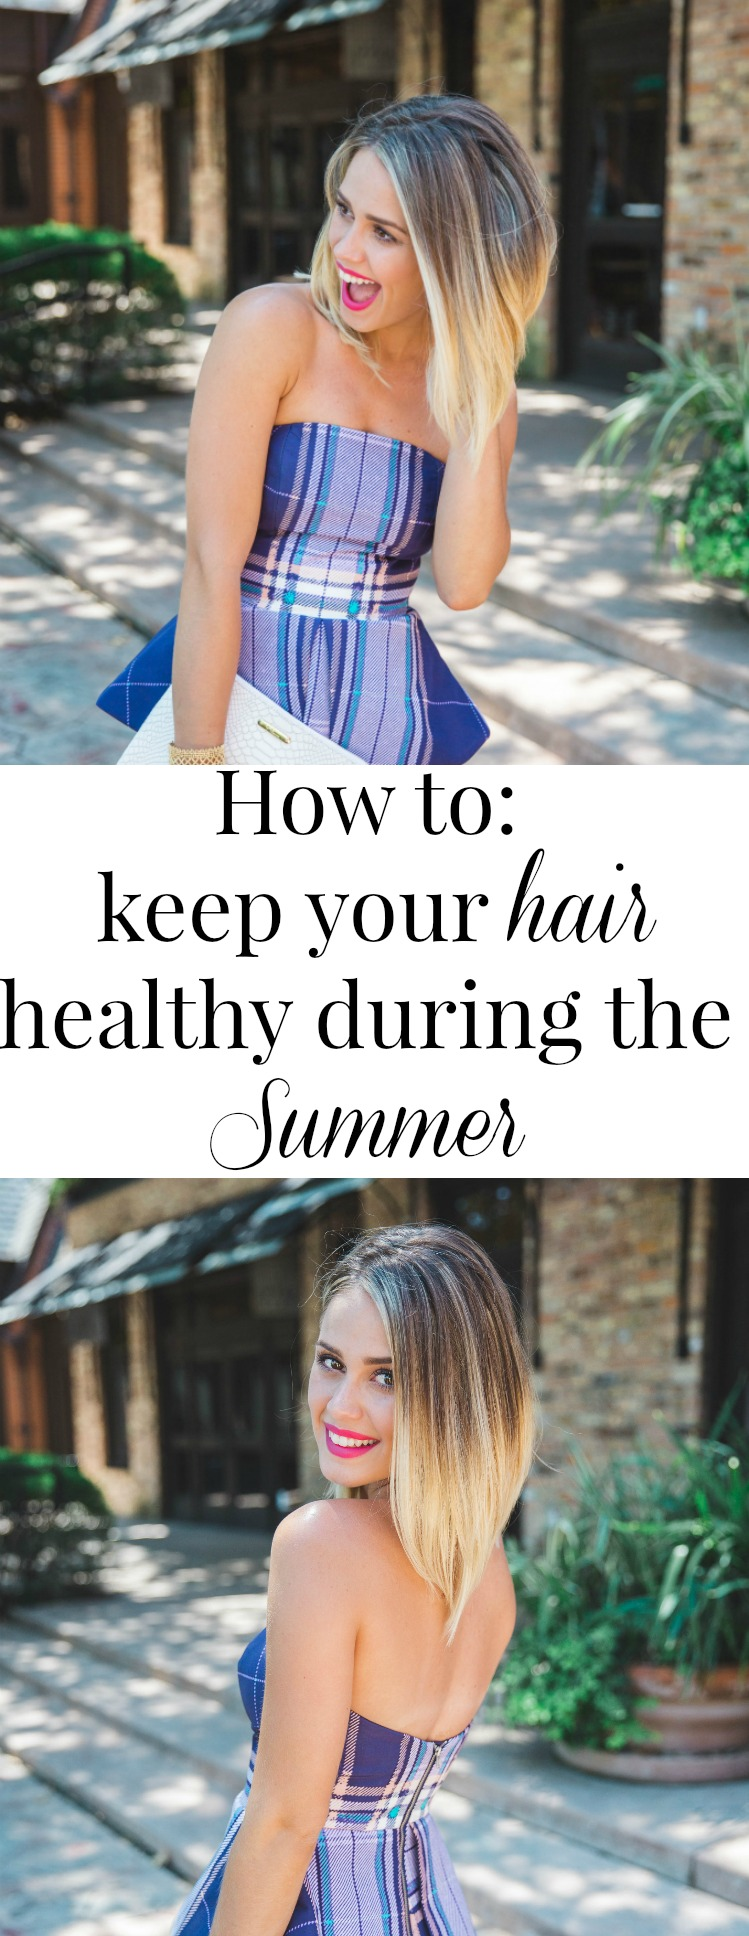 How to keep your hair healthy during the summer